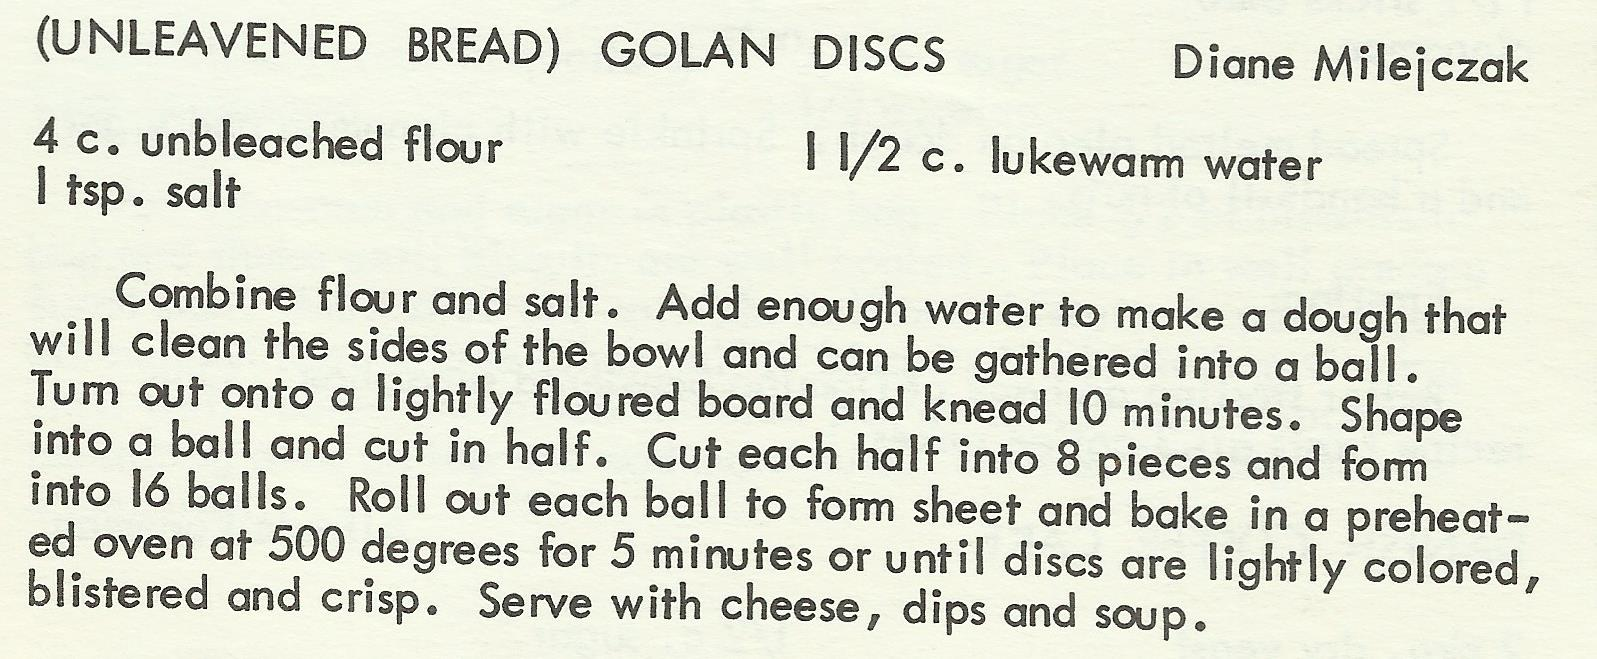 Unleavened Bread; Golan Discs